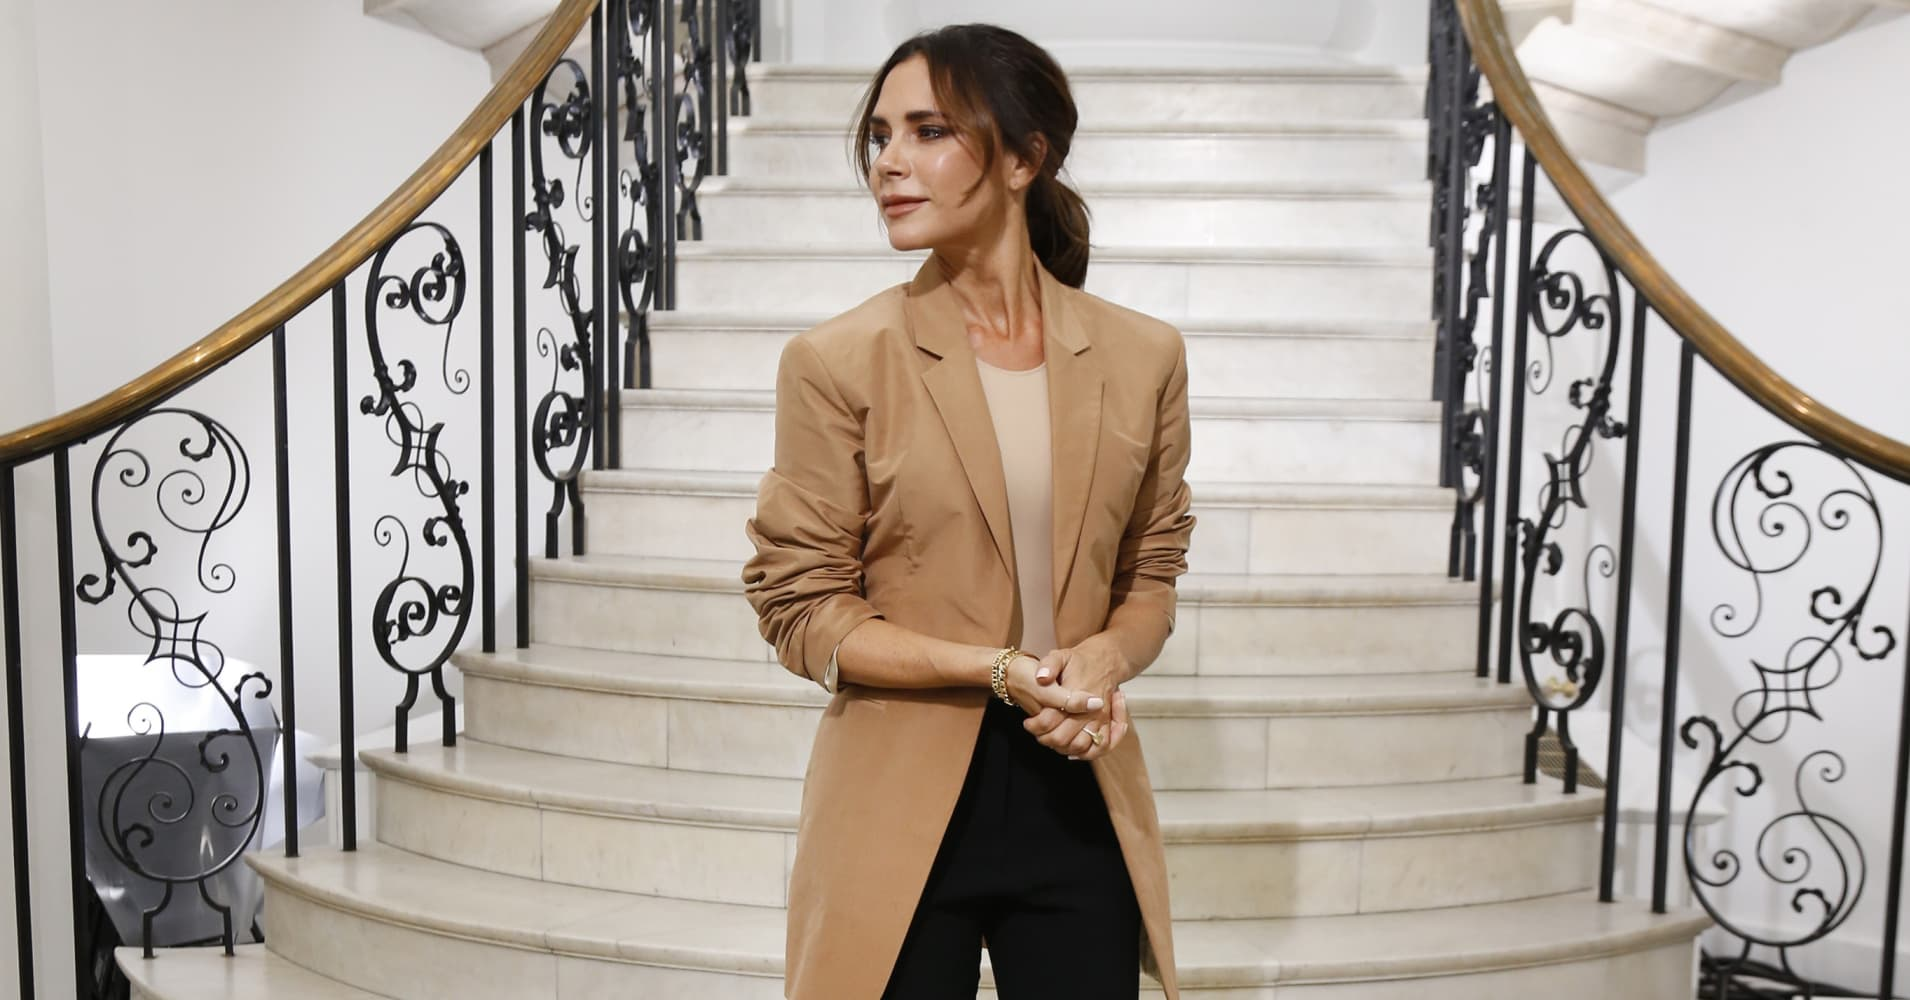 Victoria Beckham has just received a very special honour